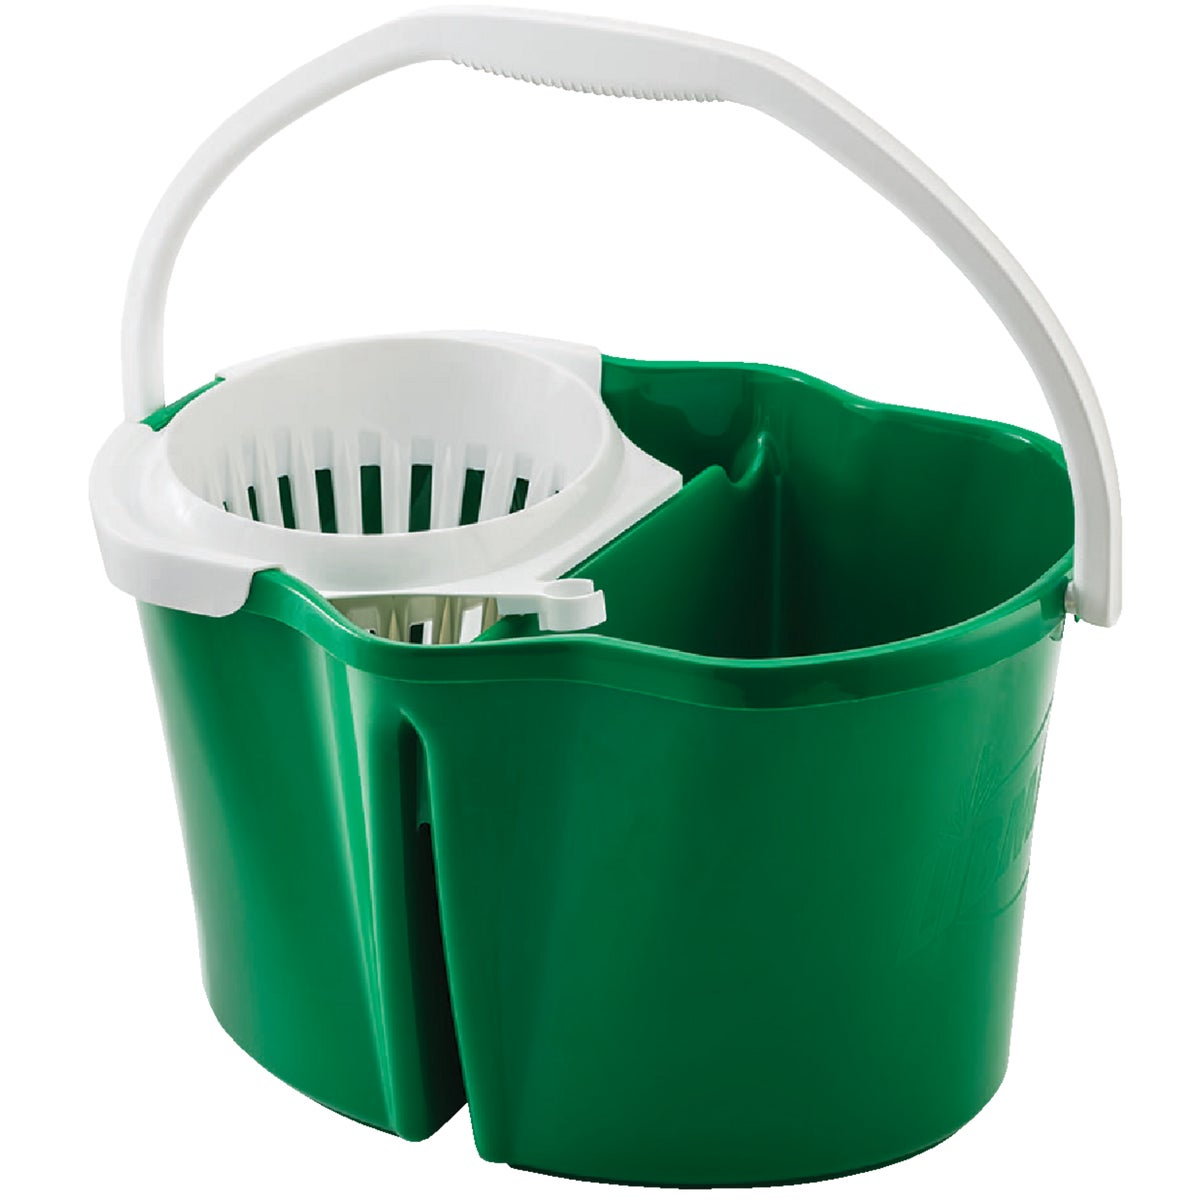 4 GALLON BUCKET W/RINGER - 2112 by The Libman Company